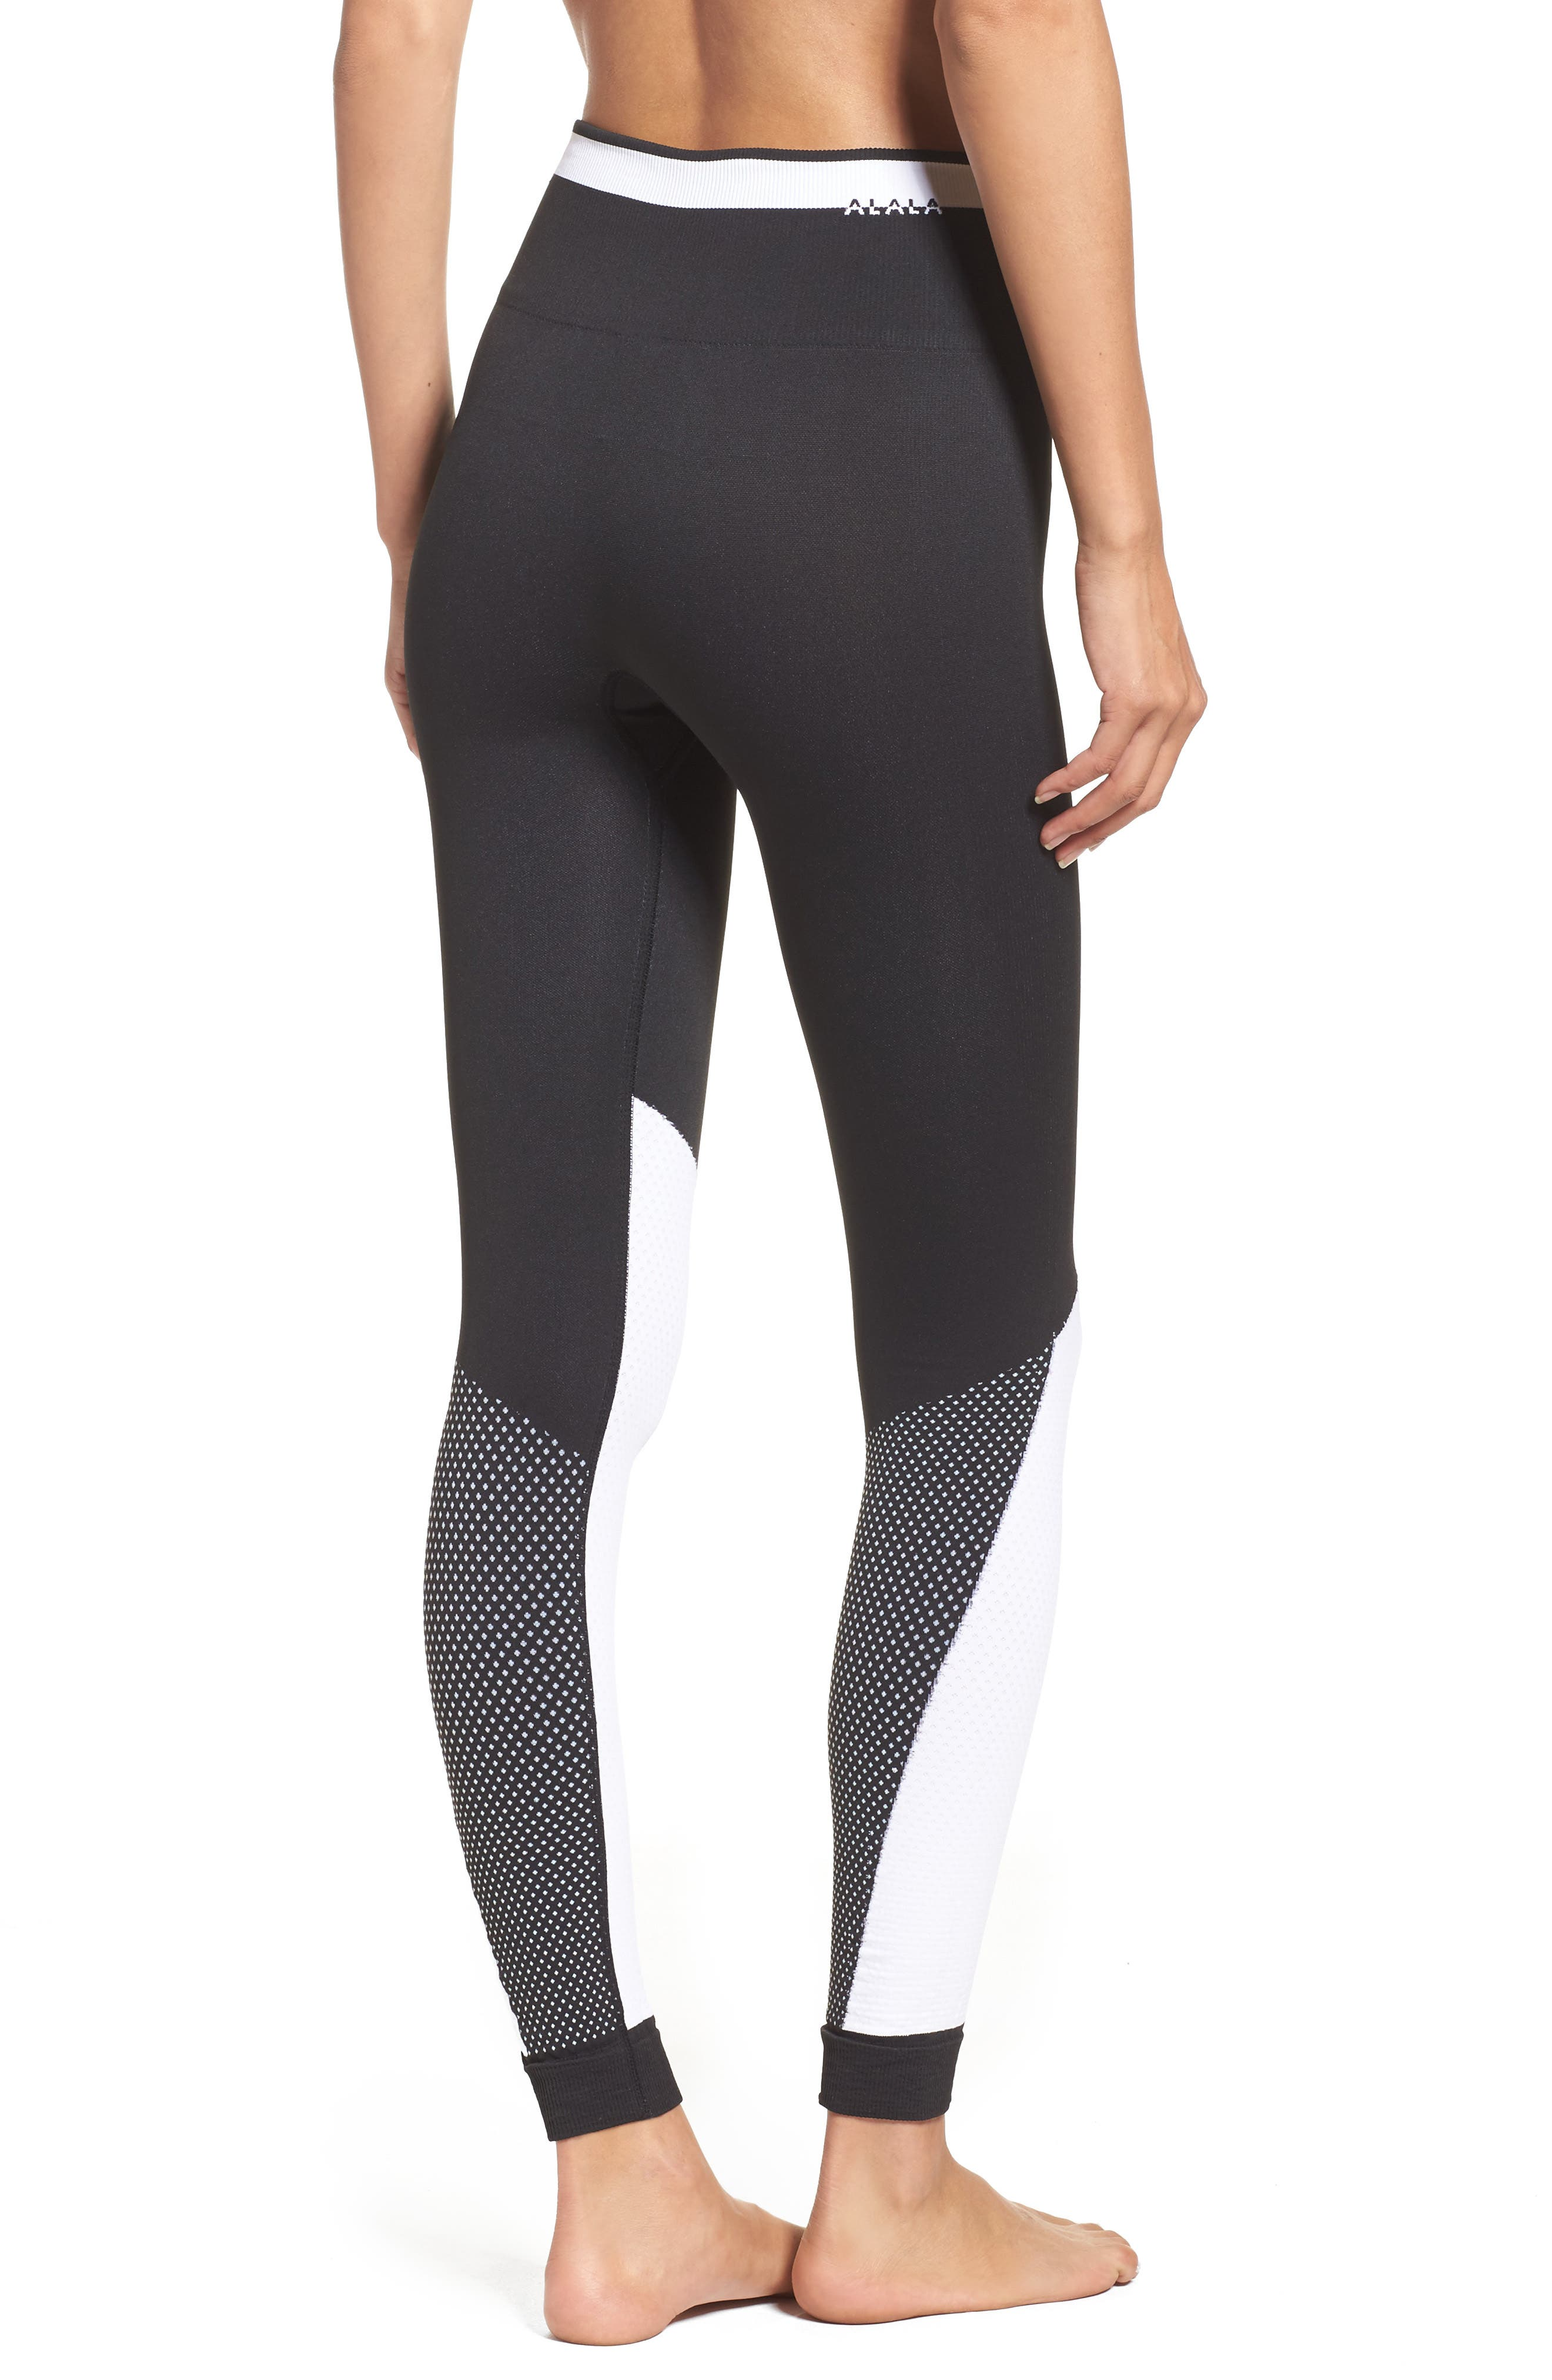 Ace Performance Tights,                             Alternate thumbnail 3, color,